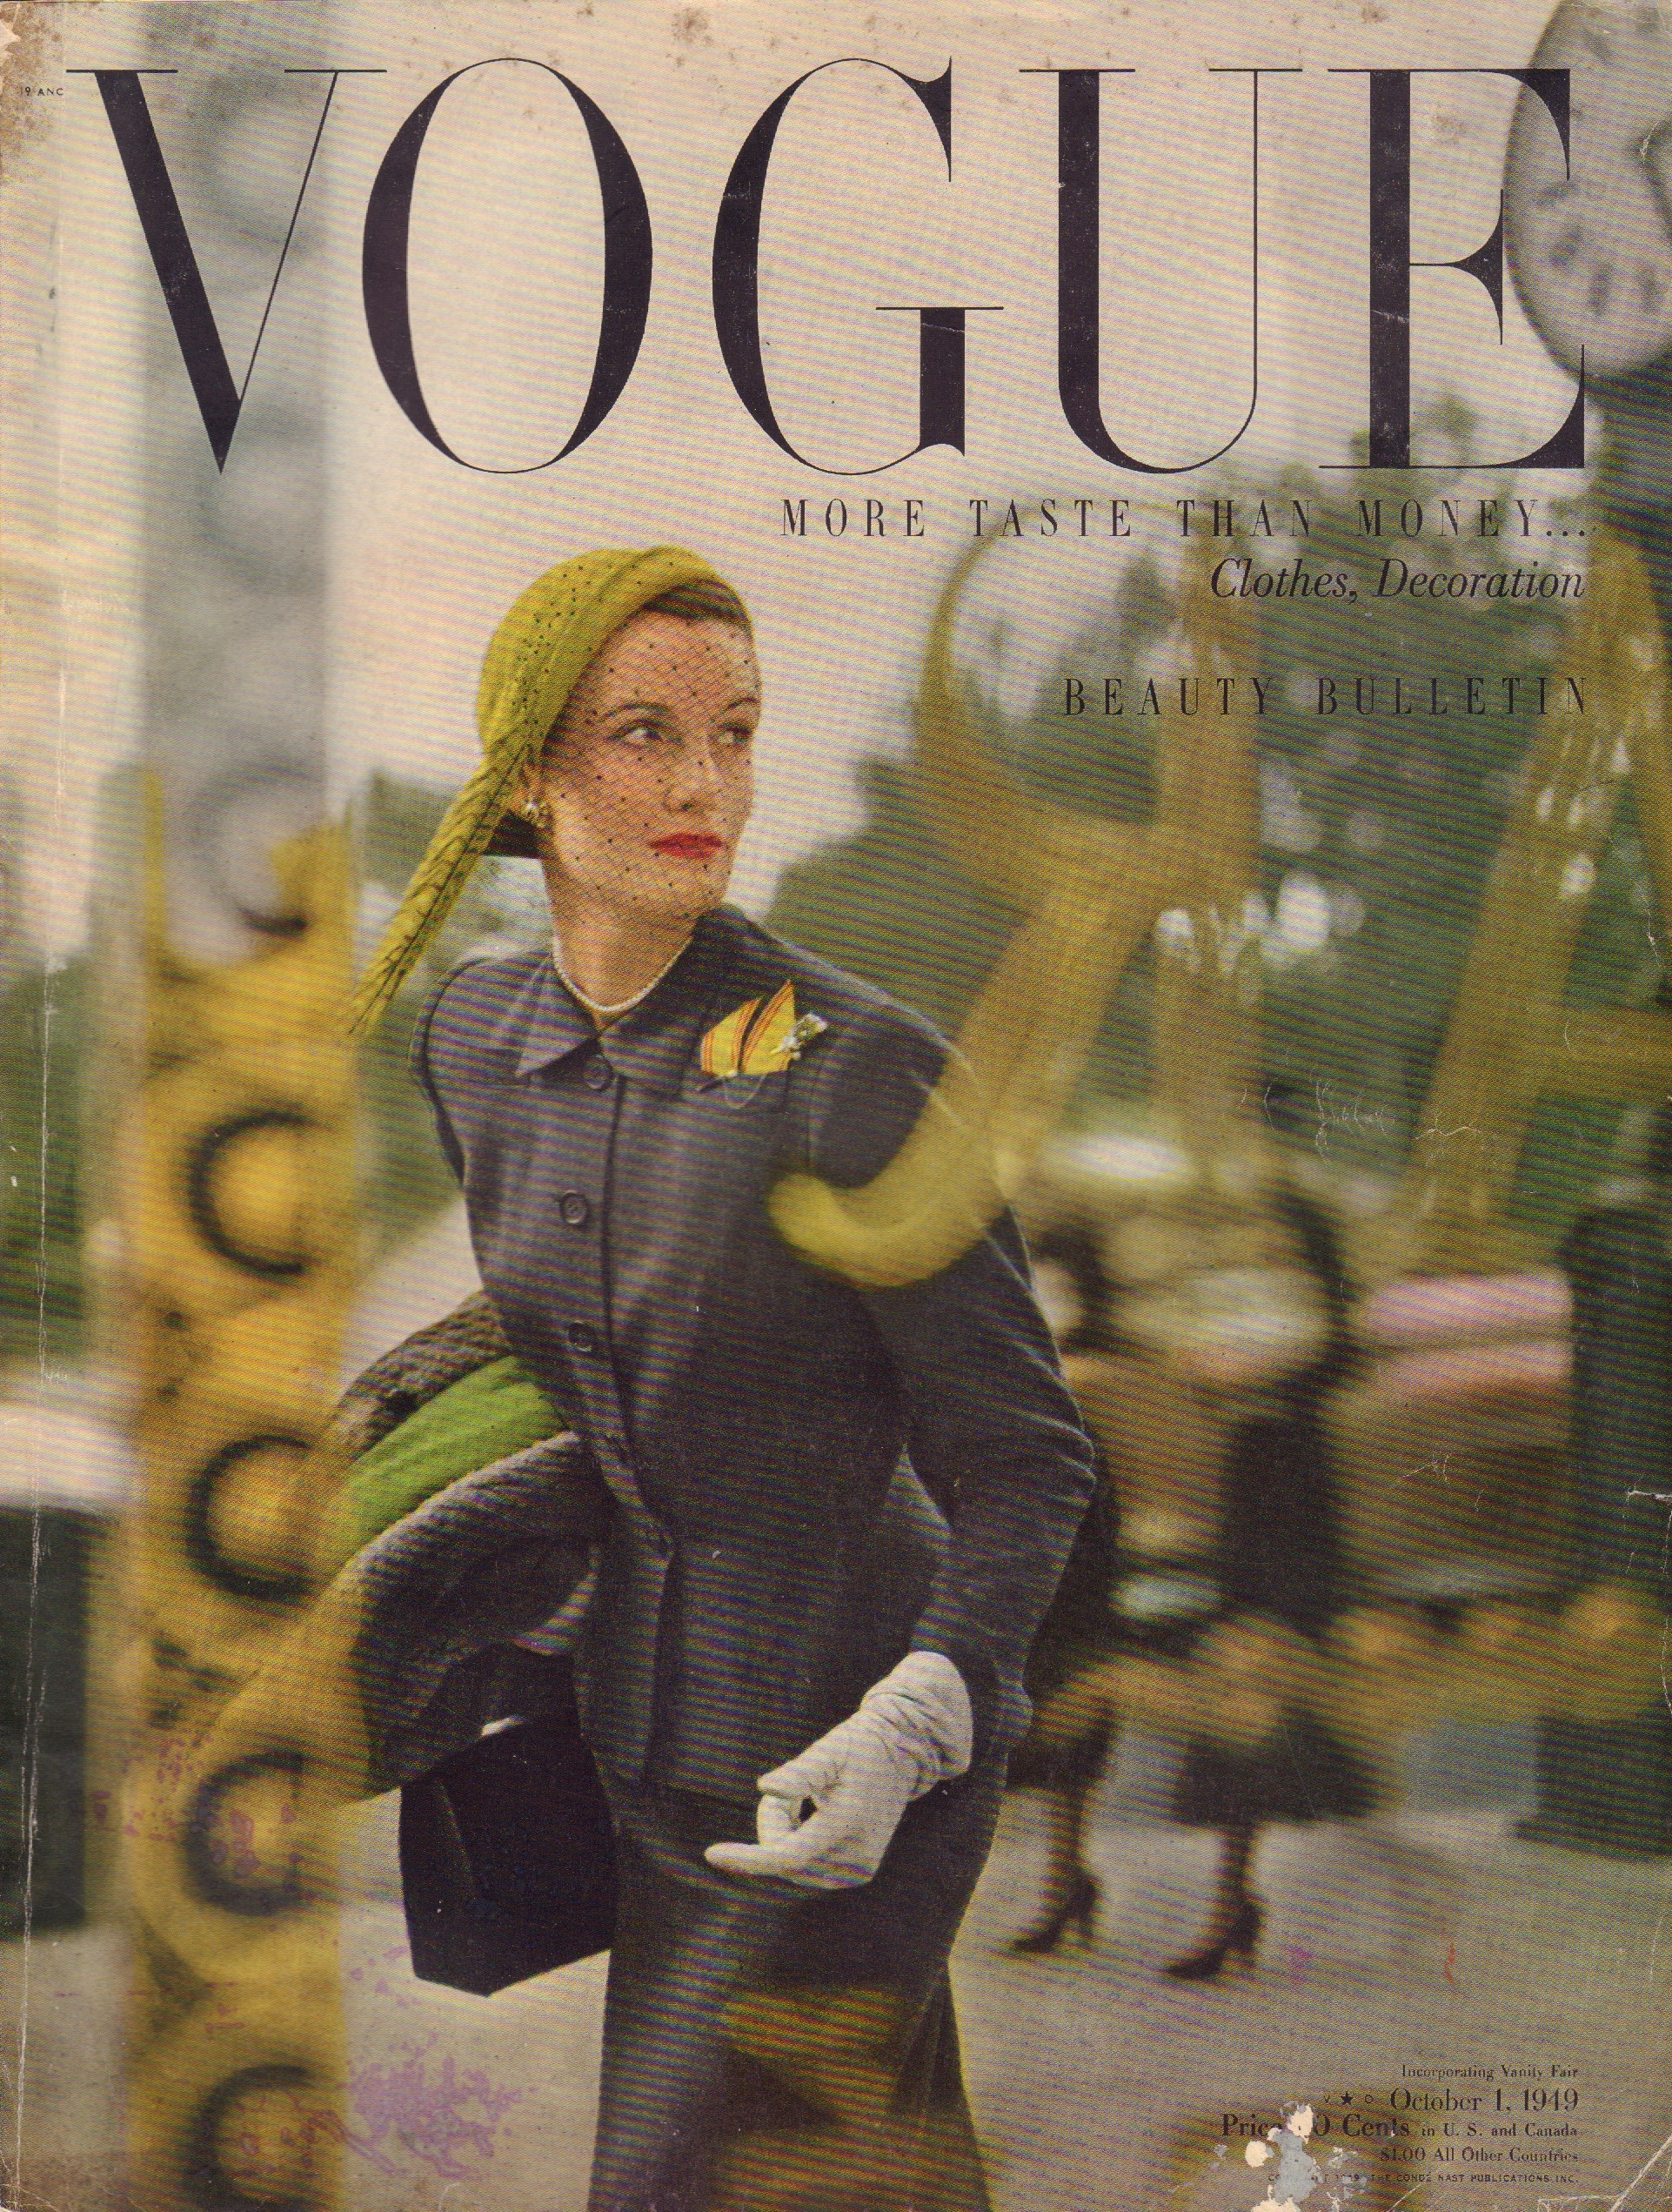 Image for Vogue October 1, 1949